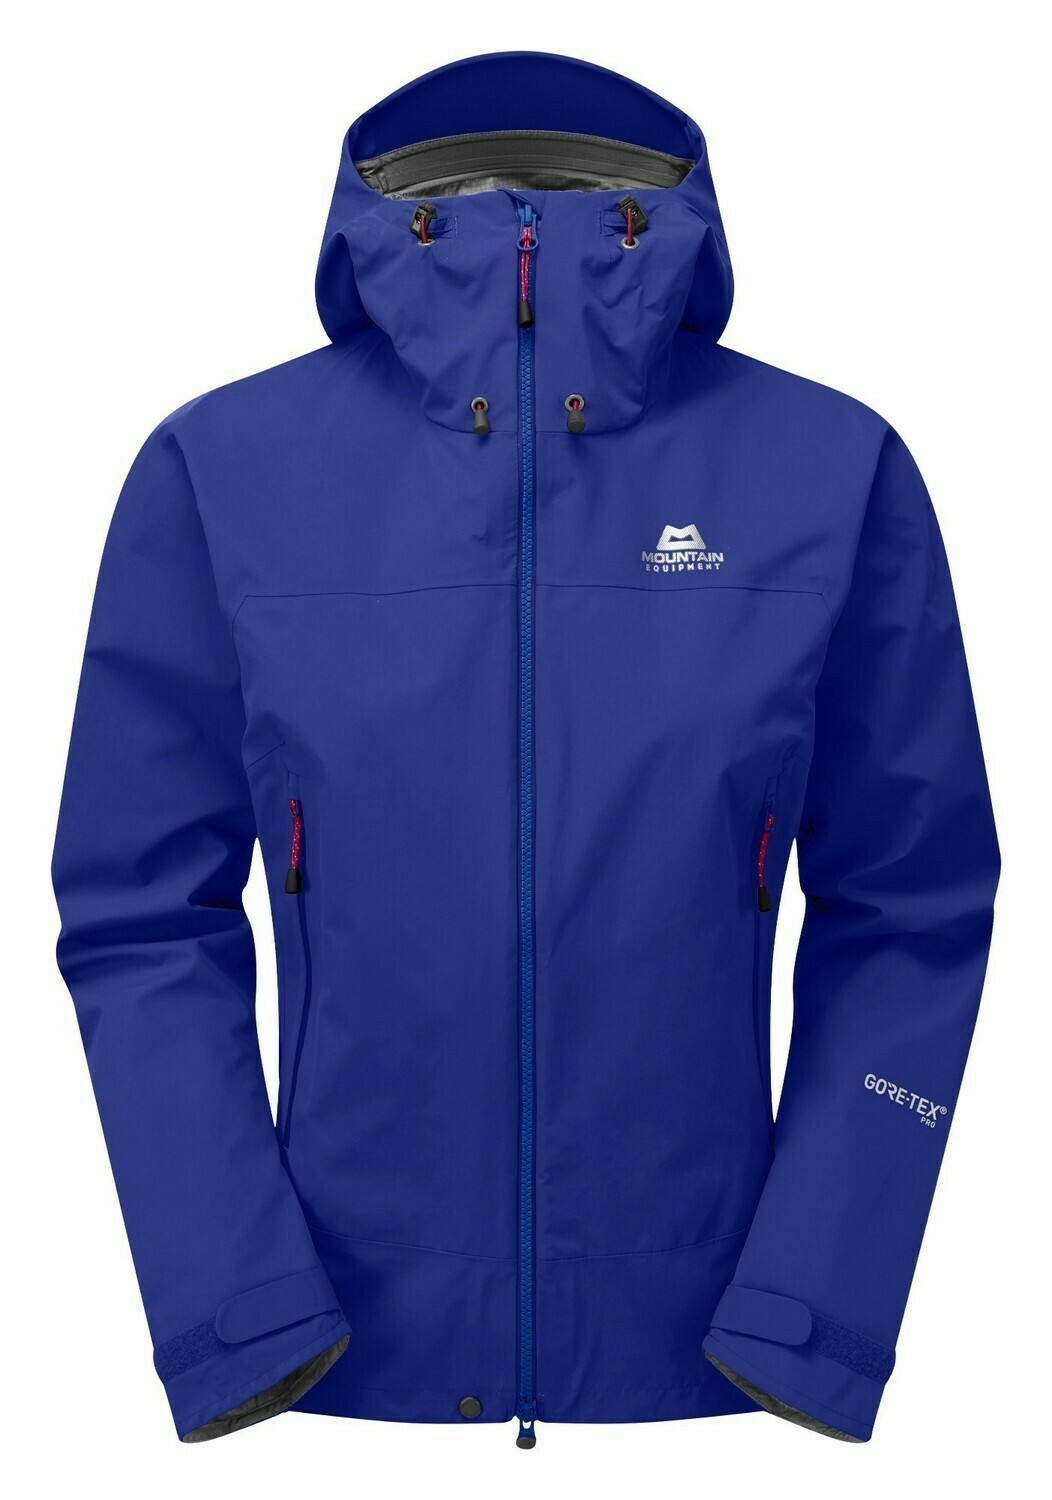 MOUNTAIN EQUIPMENT SHIVLING GORETEX JACKET CELESTIAL BLUE 12